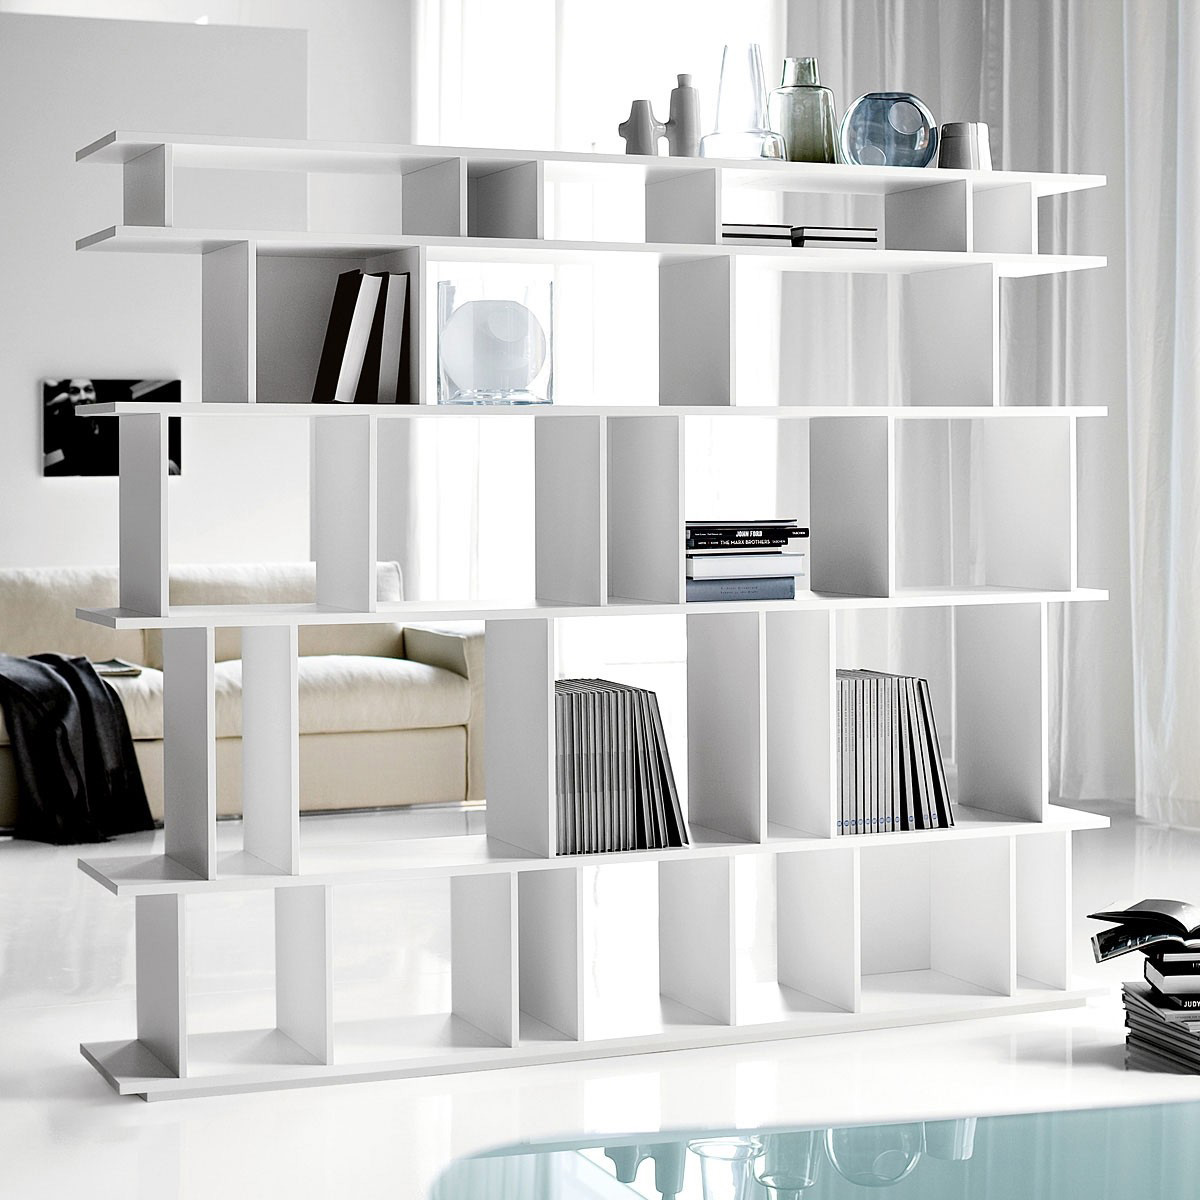 5 interesting room dividers you should try - capital lifestyle